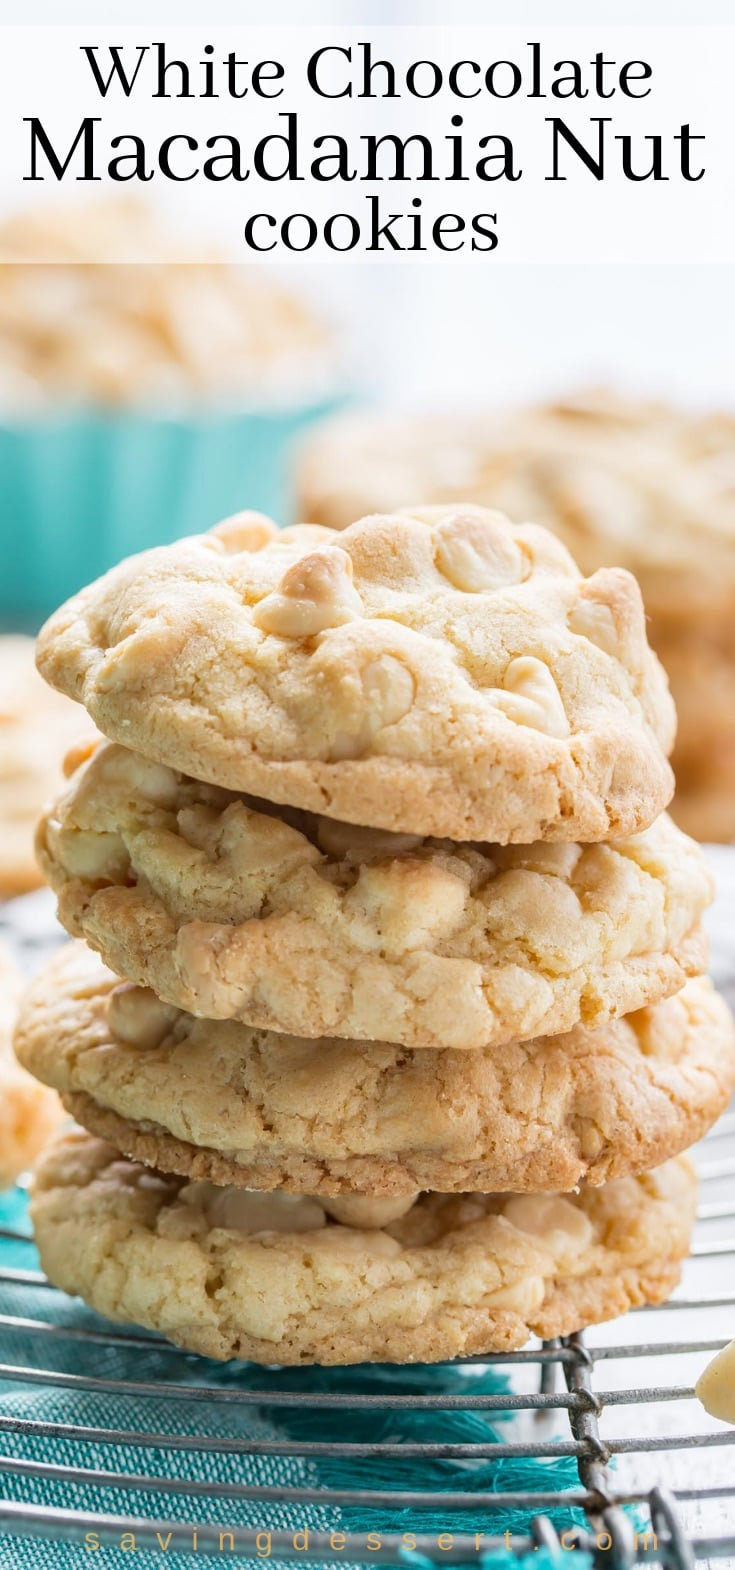 A stack of white chocolate macadamia nut cookies with coconut